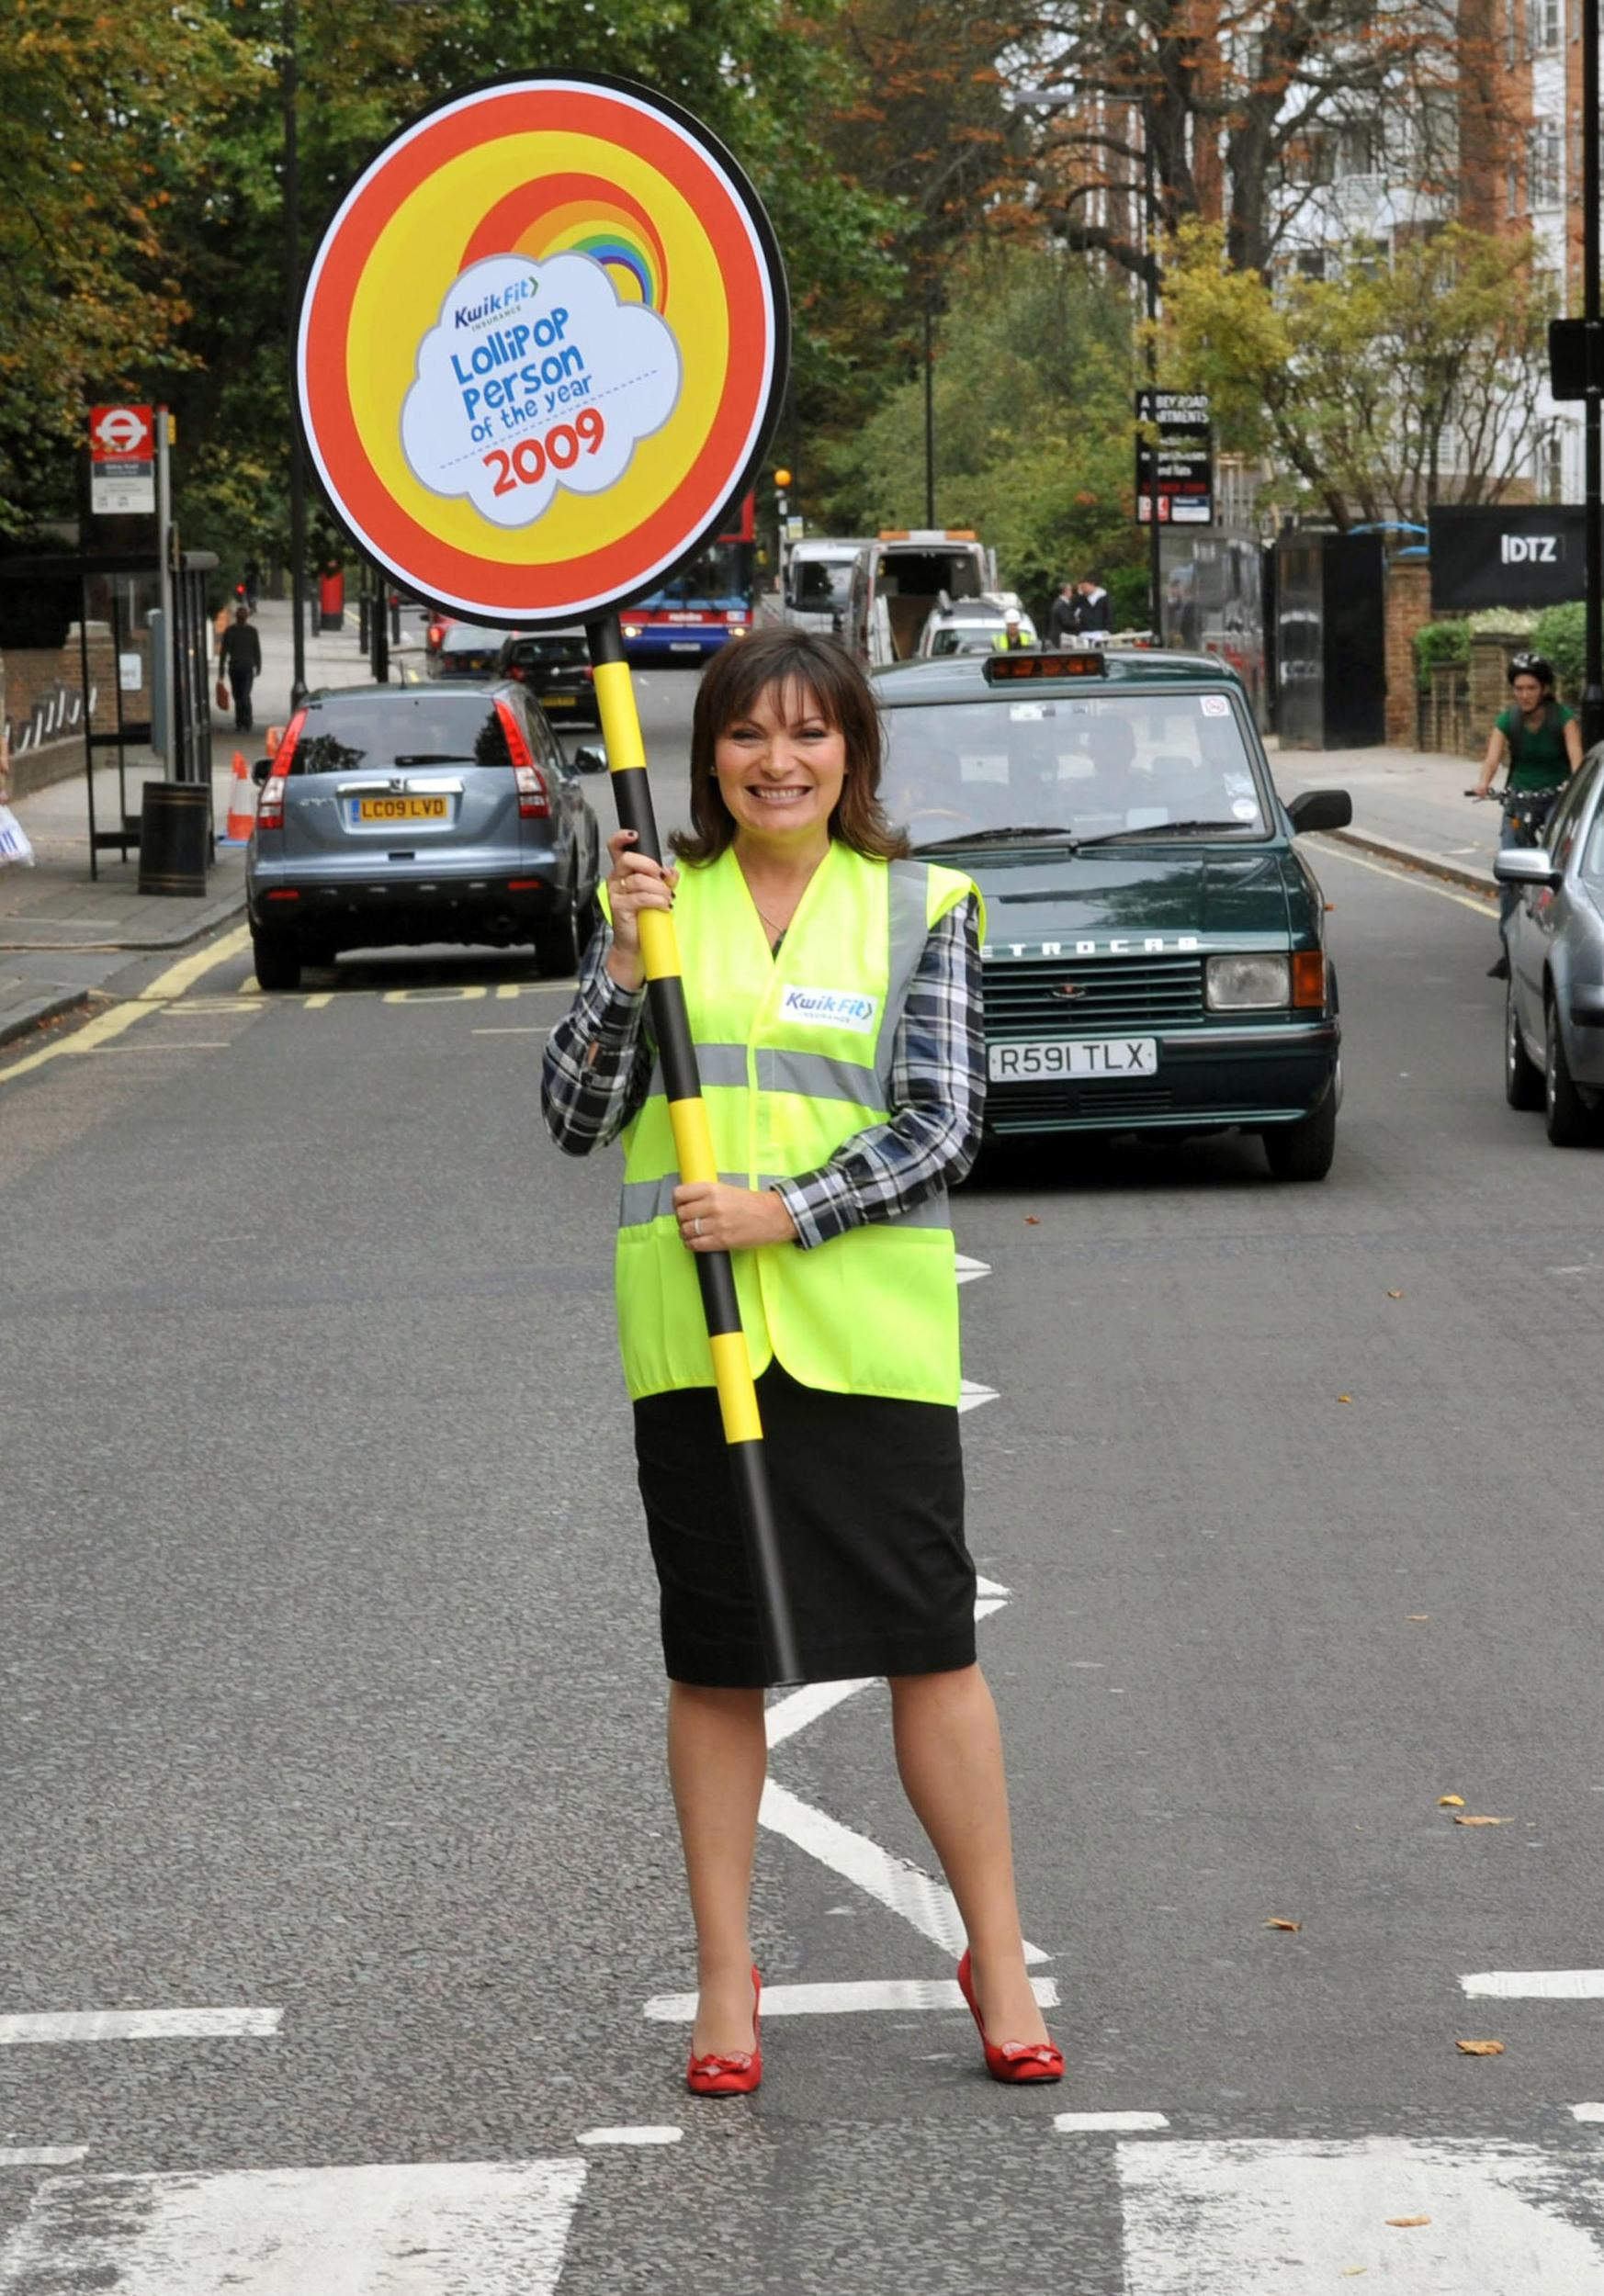 TV presenter Lorraine Kelly stops the traffic at the Abbey Road pedestrian crossing, in London, during the launch of the Lollipop Person of the Year Awards 2009.